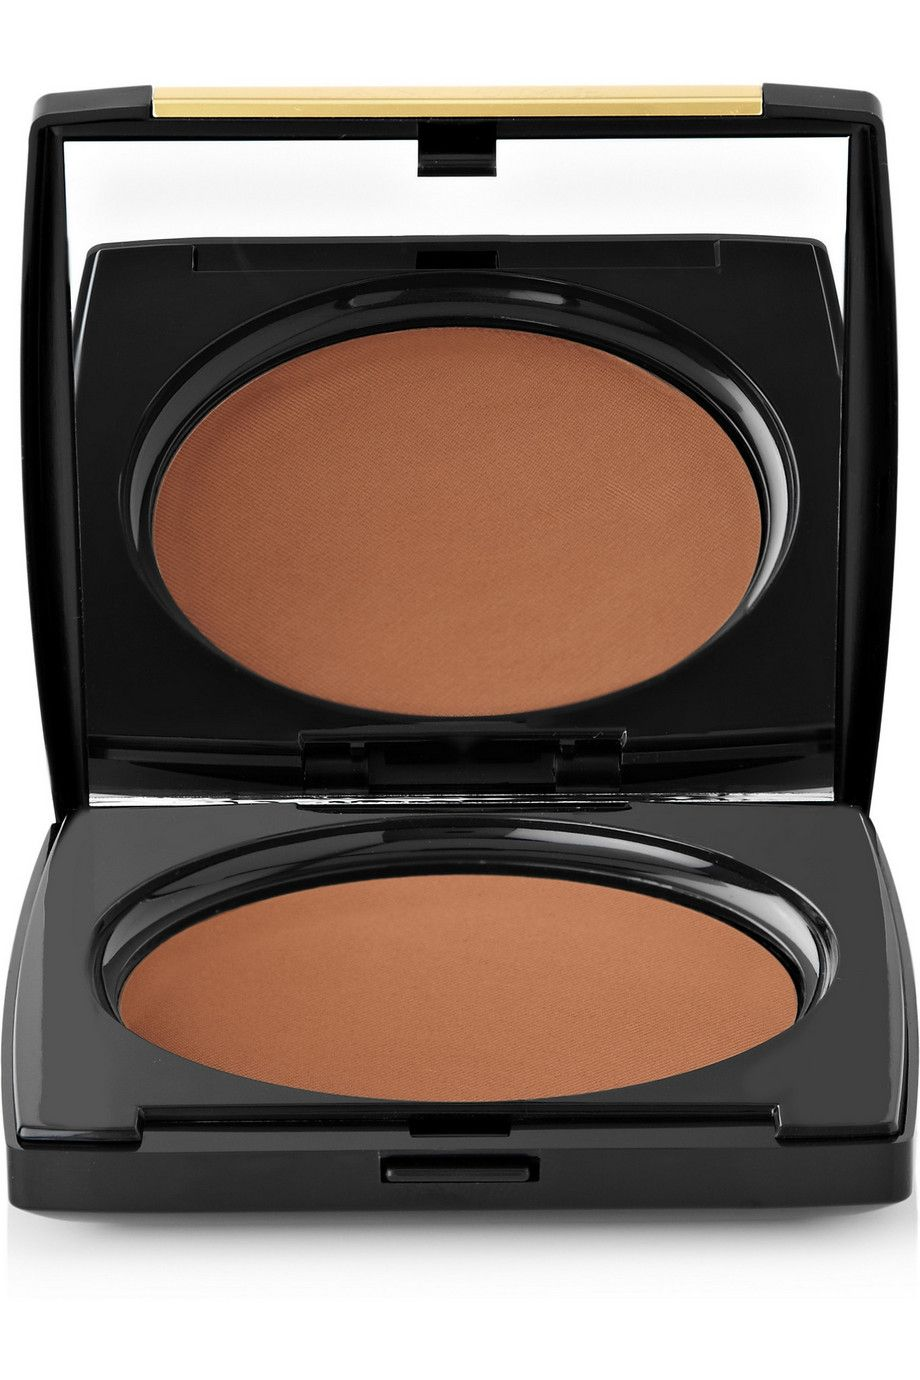 For Versatility Dual Finish Versatile Powder Makeup Lancôme net-a-porter.com $38.50 SHOP NOW This handy compact can be used wet or dry, depending on the coverage you want. It starts out sheer but can build up to more coverage to cover up spots and redness.